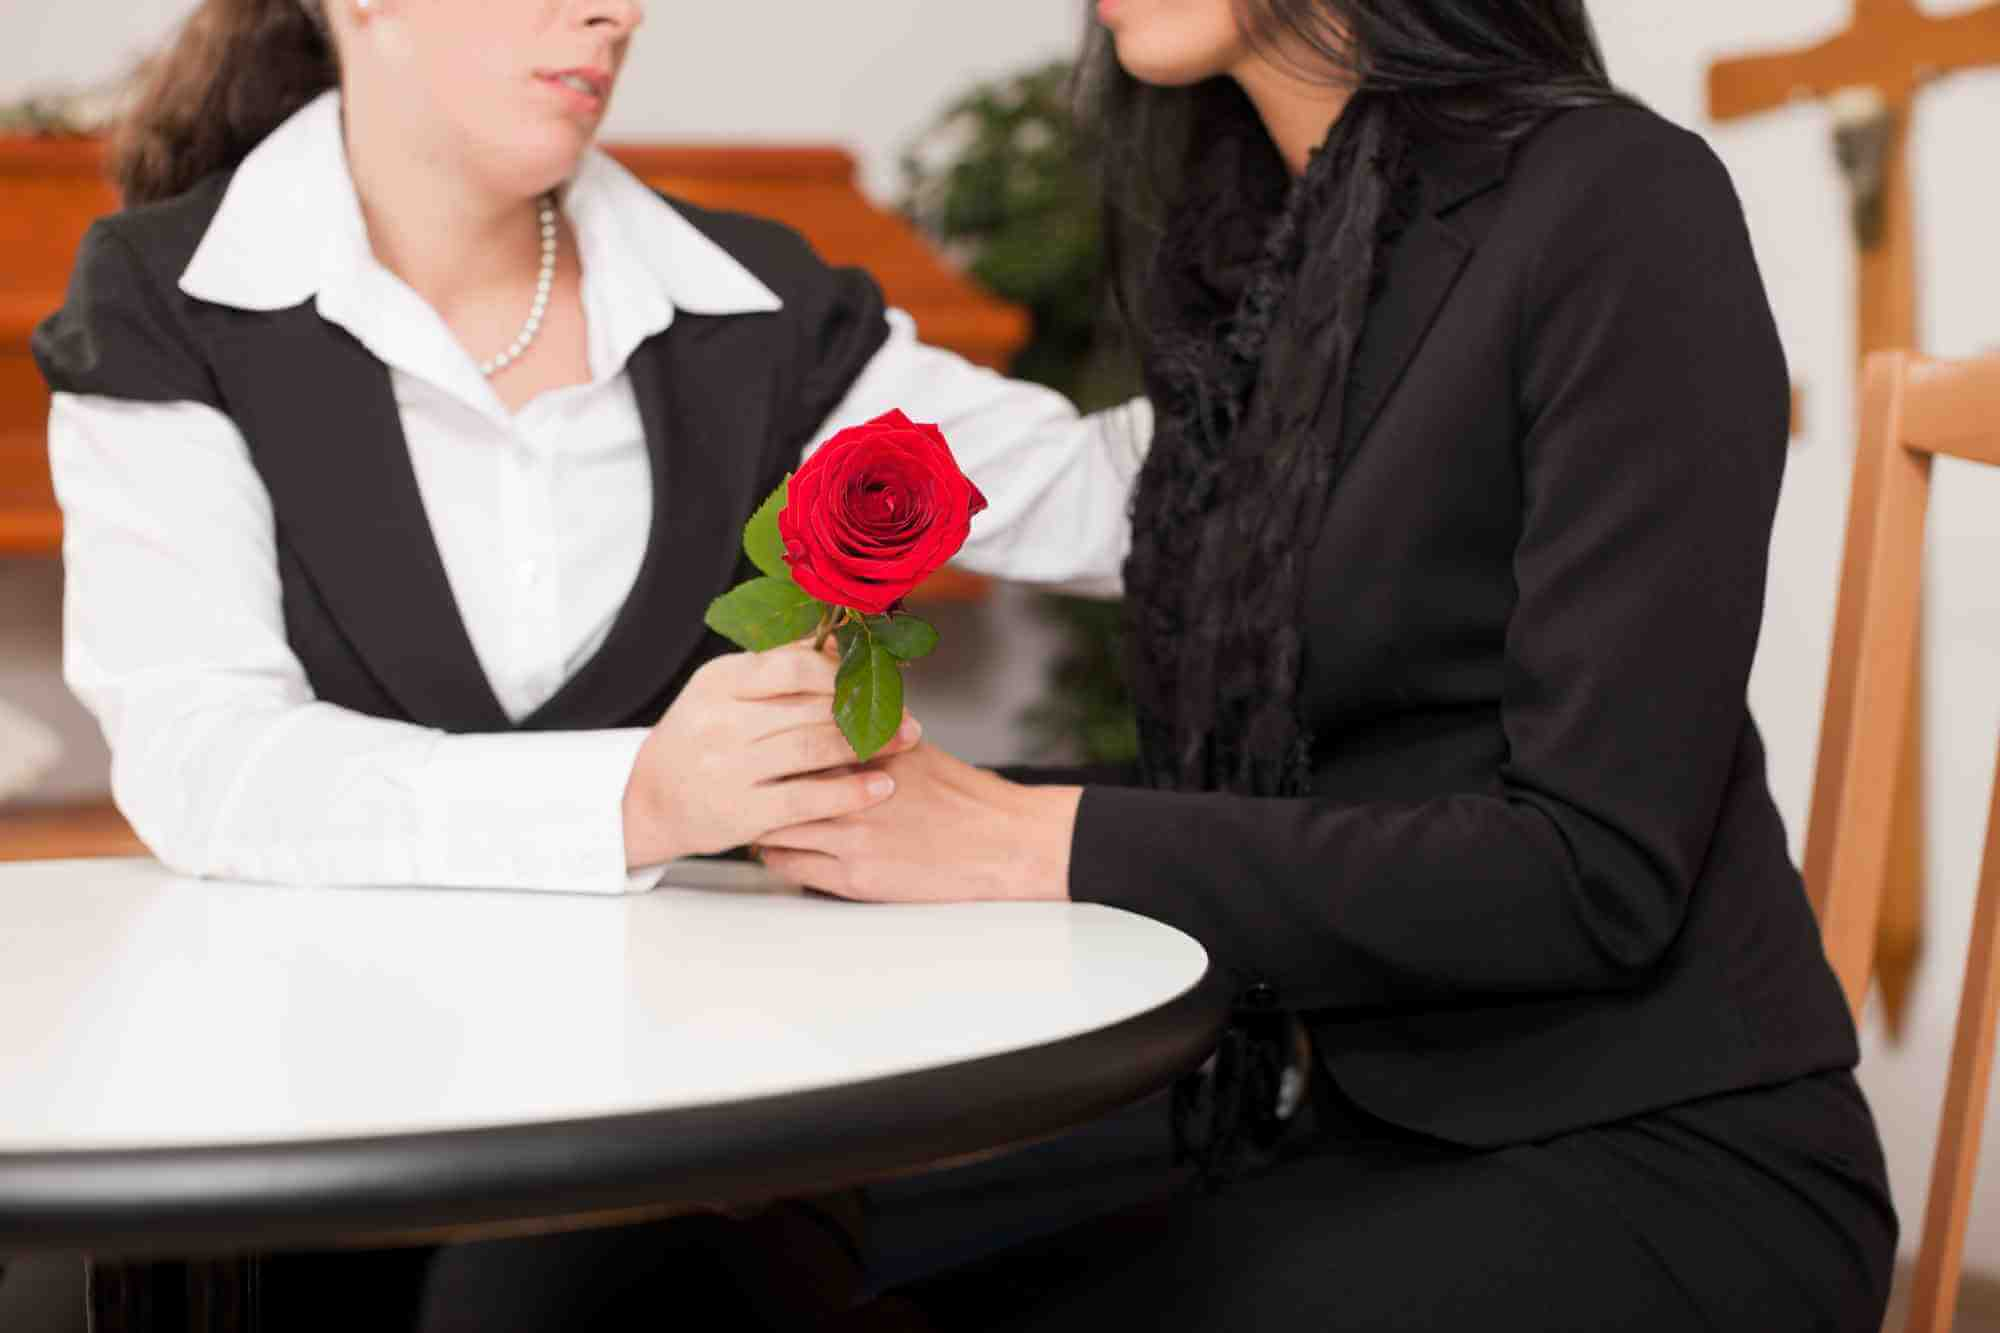 Female funeral director in formal clothes comforts mourning woman in black holding a red rose